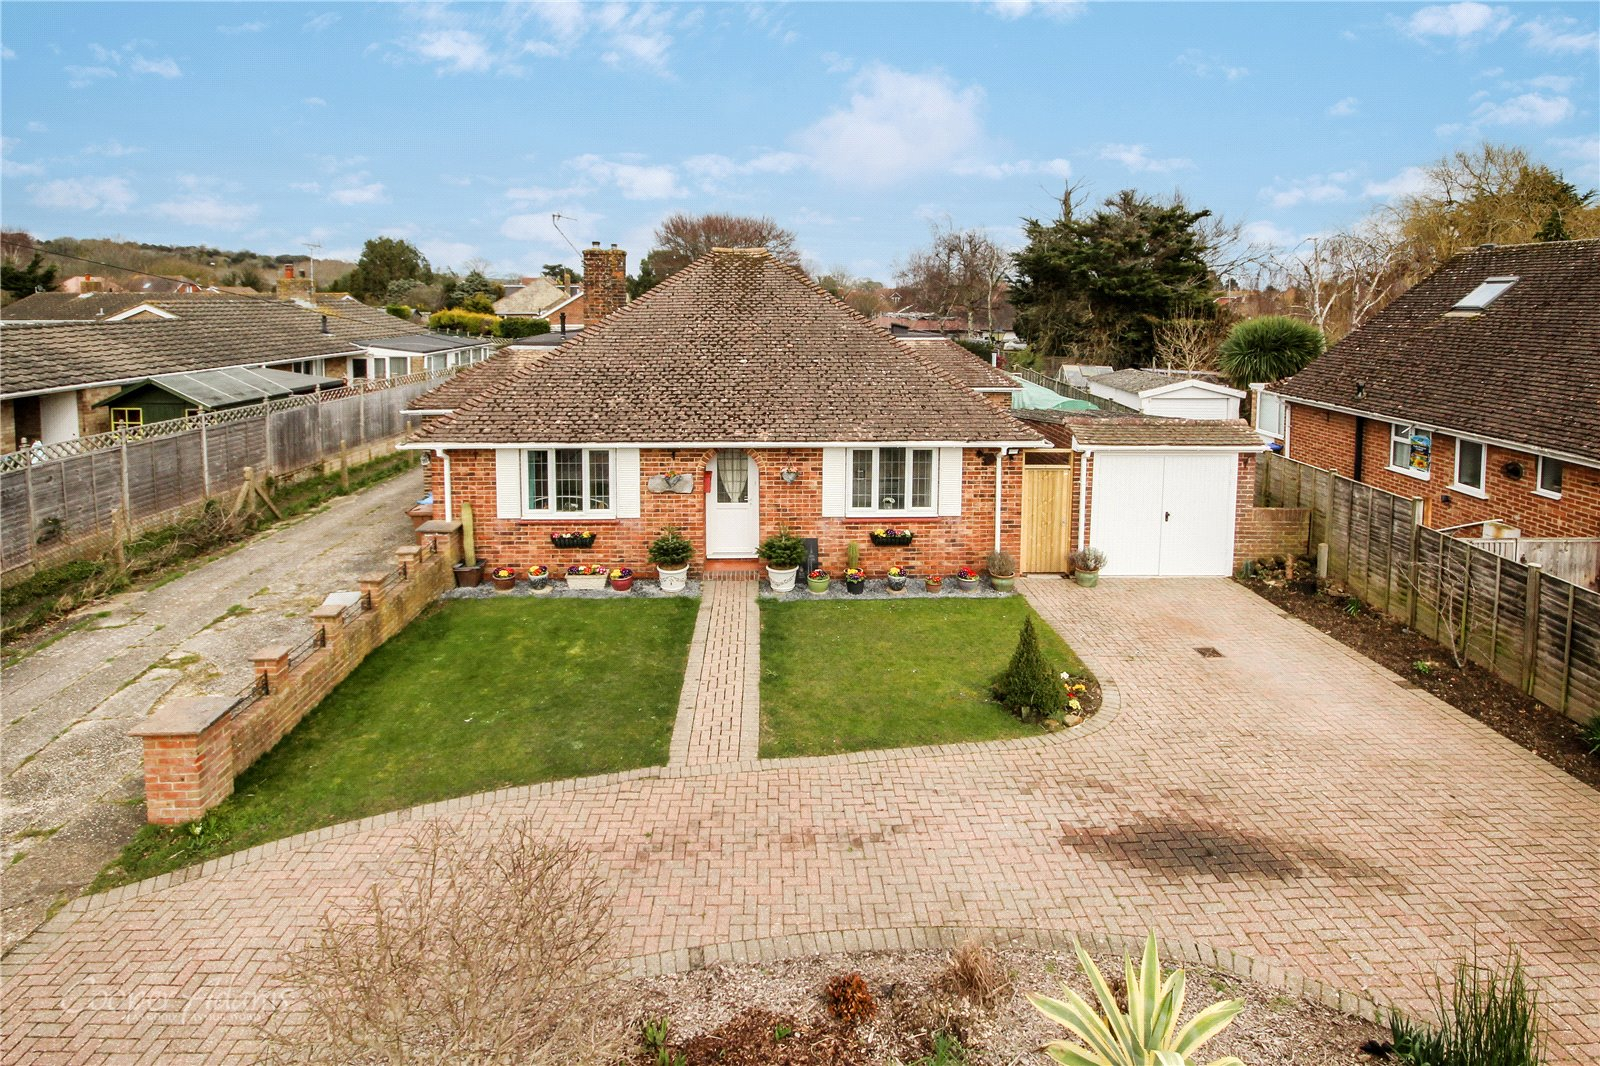 4 bed bungalow for sale in Langbury Lane, Ferring, BN12